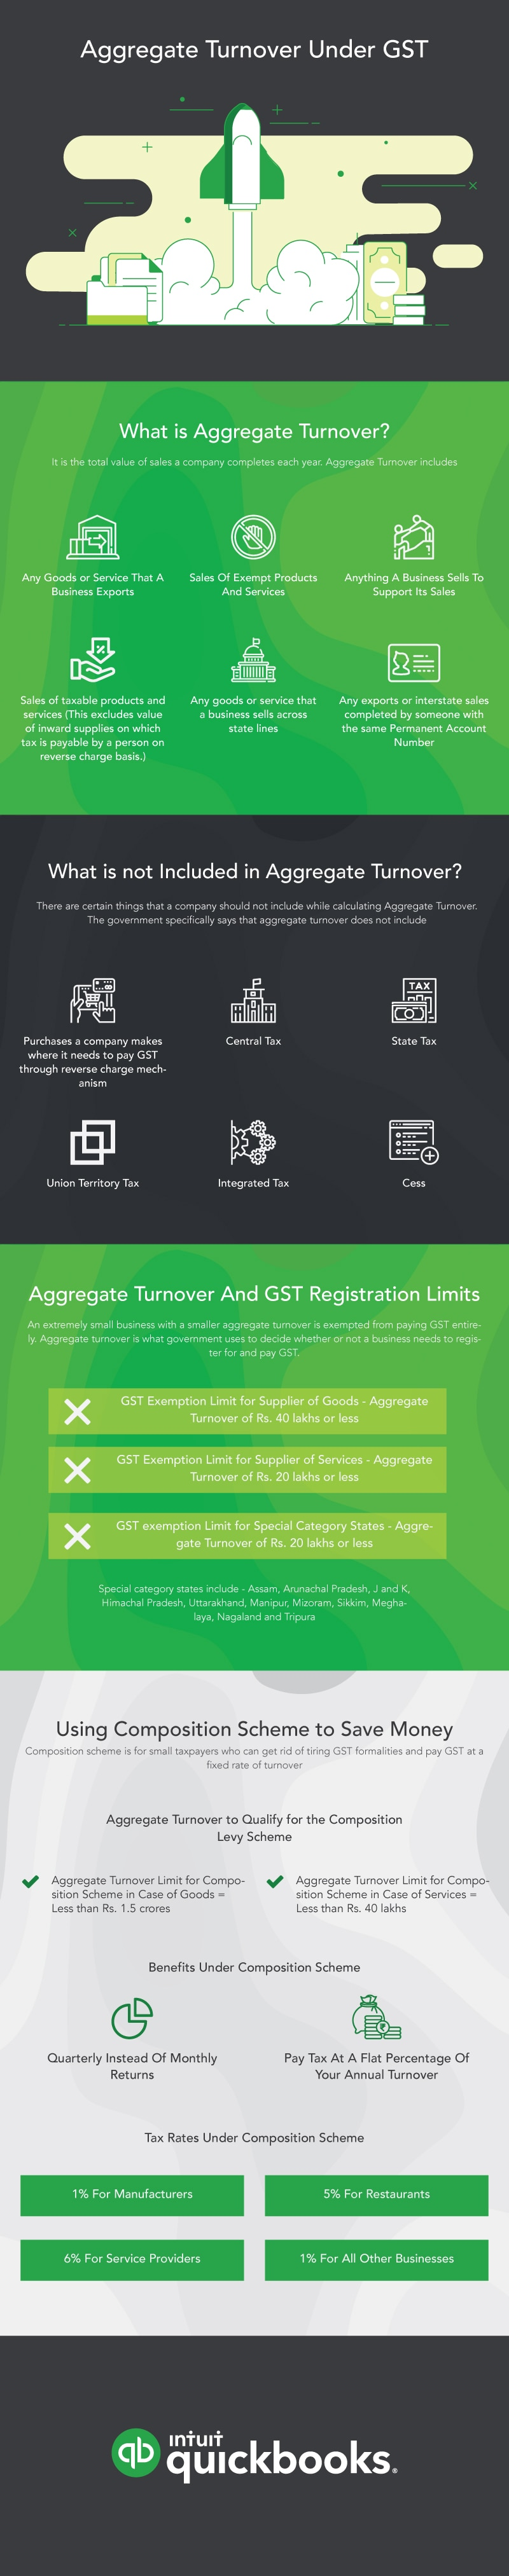 AGGREGATE TURNOVER UNDER GST